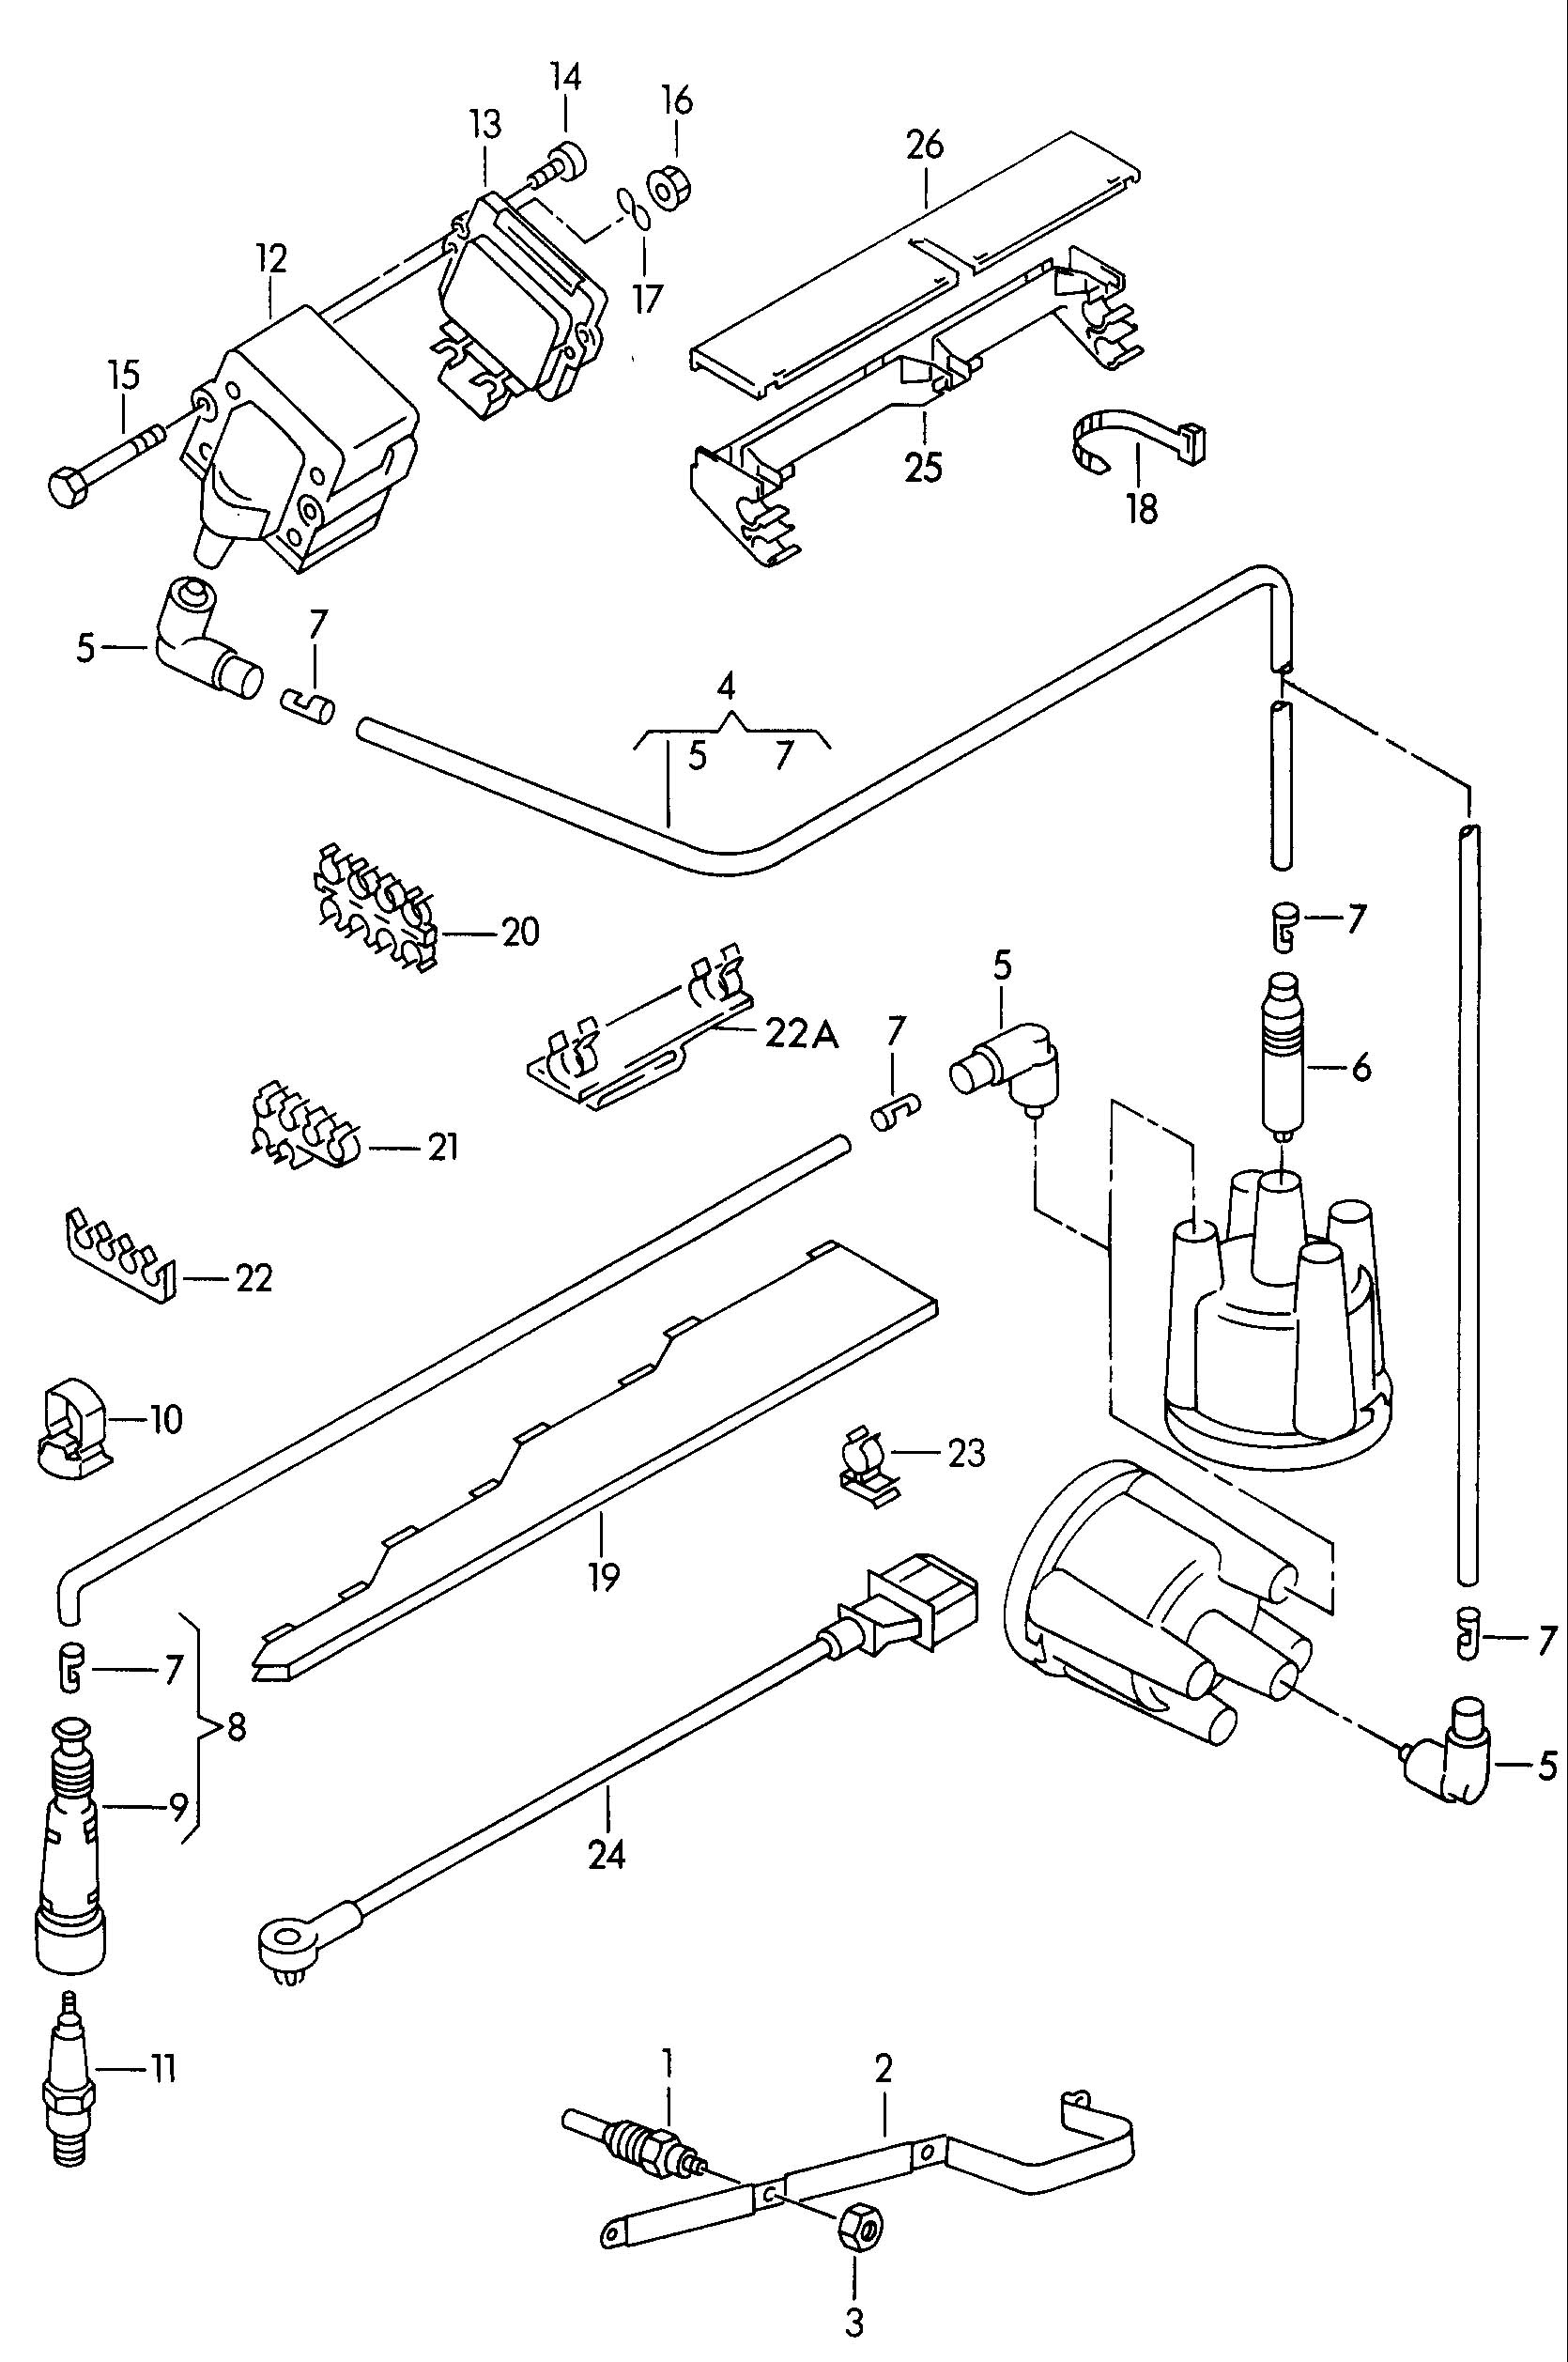 Vw Golf Alternator Wiring Diagram moreover This Is A 1 Page Wiring Schematic For The besides 2010 09 01 archive likewise Soon Forget Alternators Bumblebee furthermore 04. on vw beetle transformer